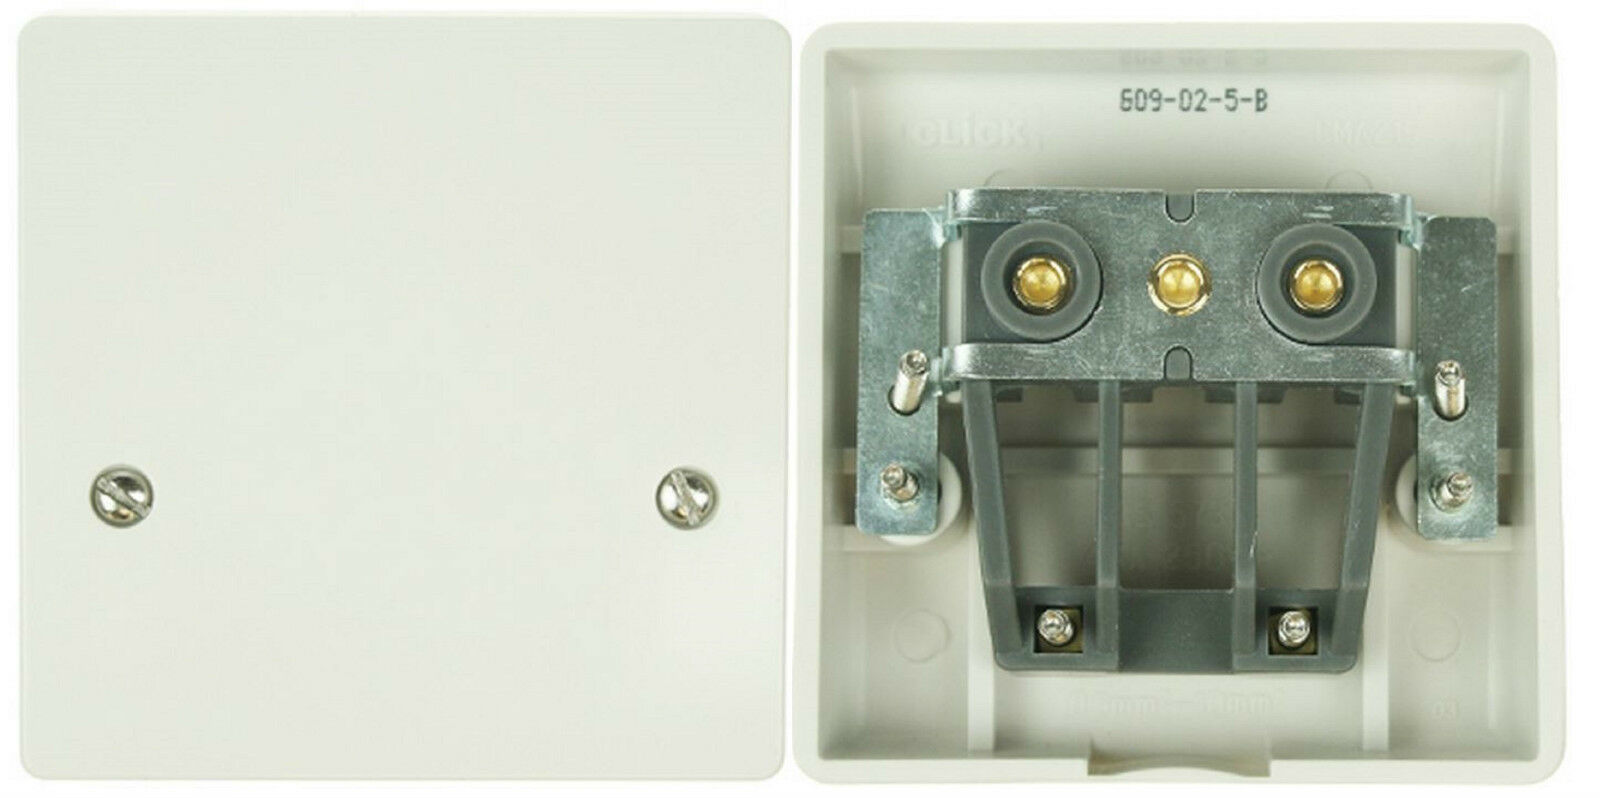 Click Mode 45a Cooker Connection Plate Ergonomic Wiring Accessories Scolmore 1 Of 3only 4 Available See More